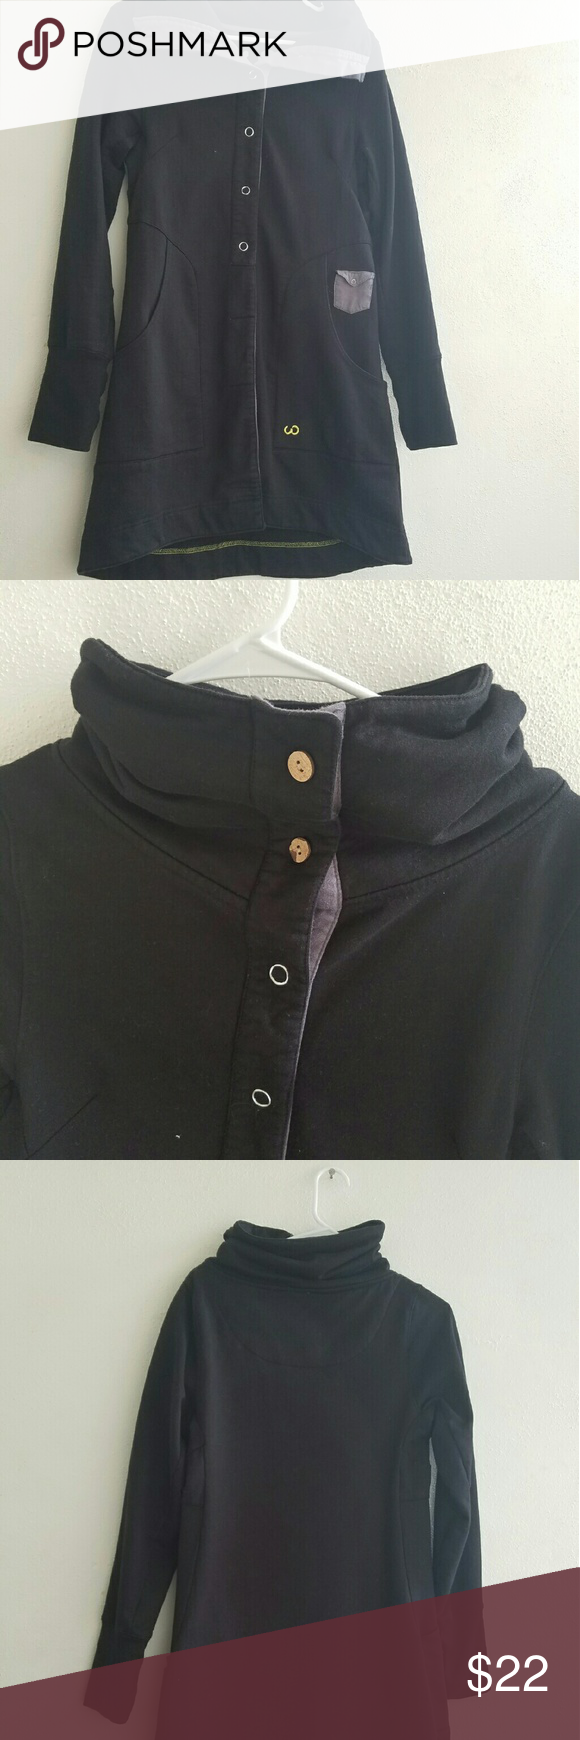 Womens long button up sweatshirt Like new and very comfy! Cowl neck can be worn button up or down - Two pockets on the front and thumb holes on wrist cuff looptworks Tops Sweatshirts & Hoodies